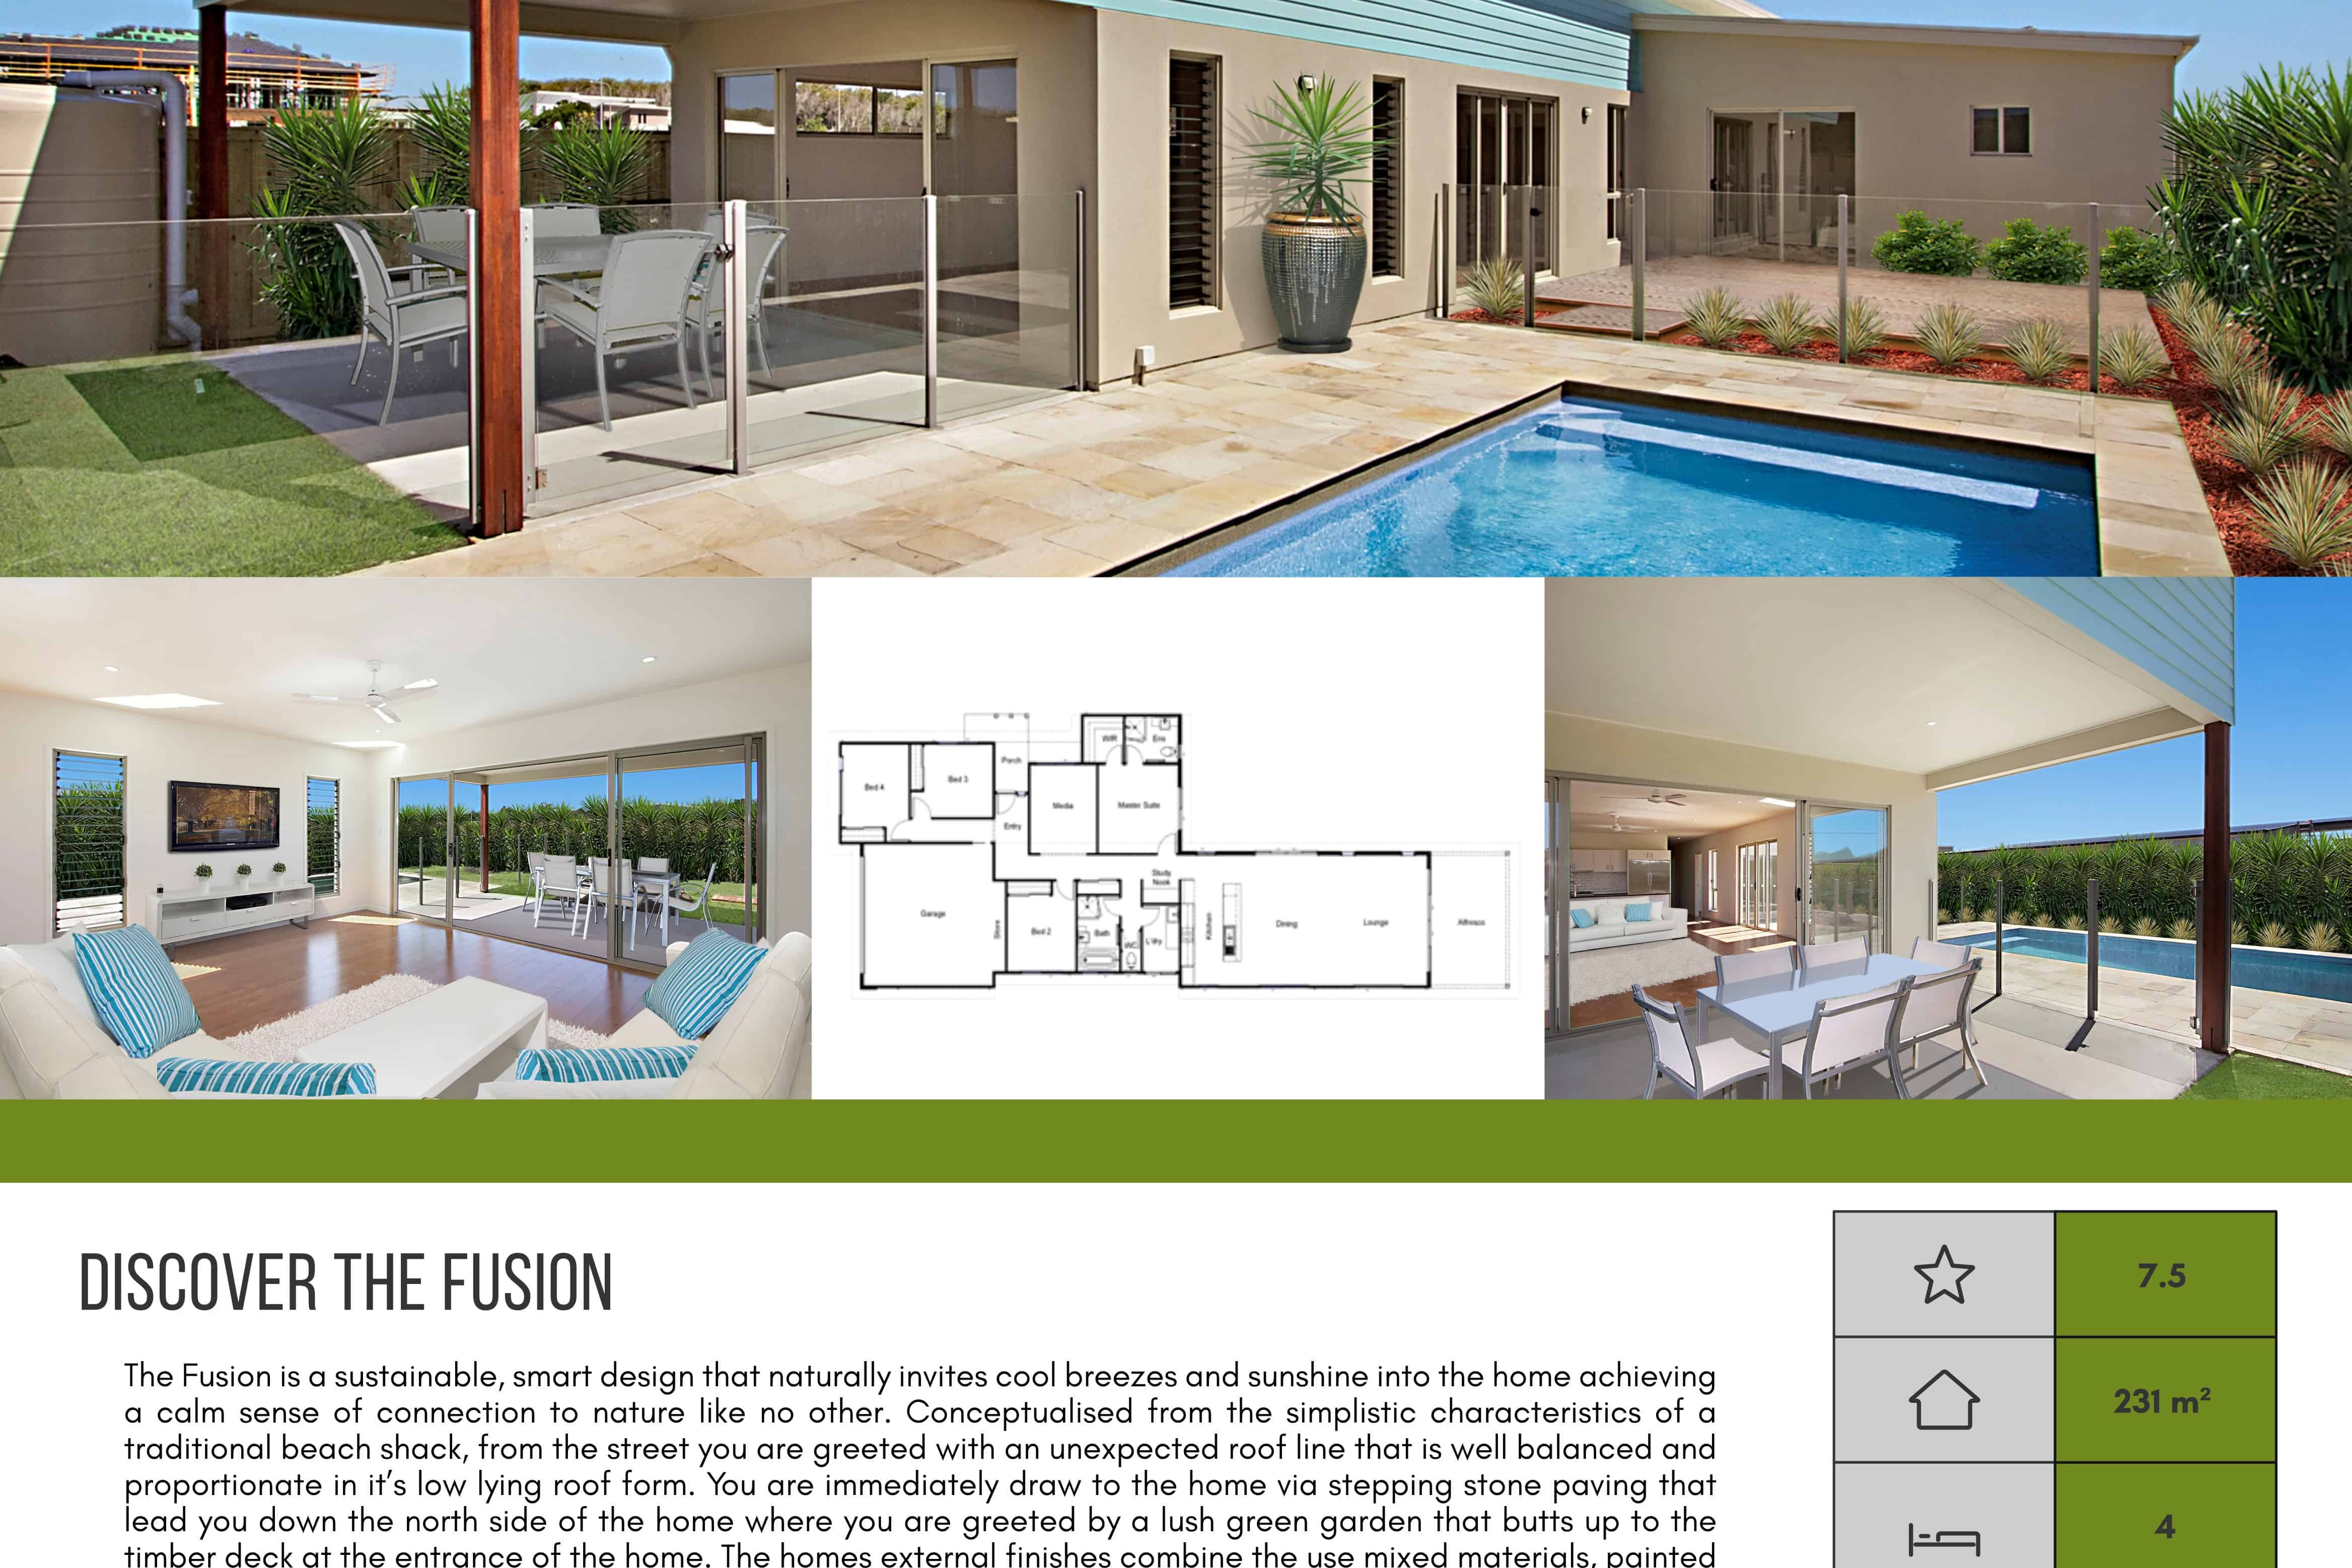 Download The Fusion Brochure